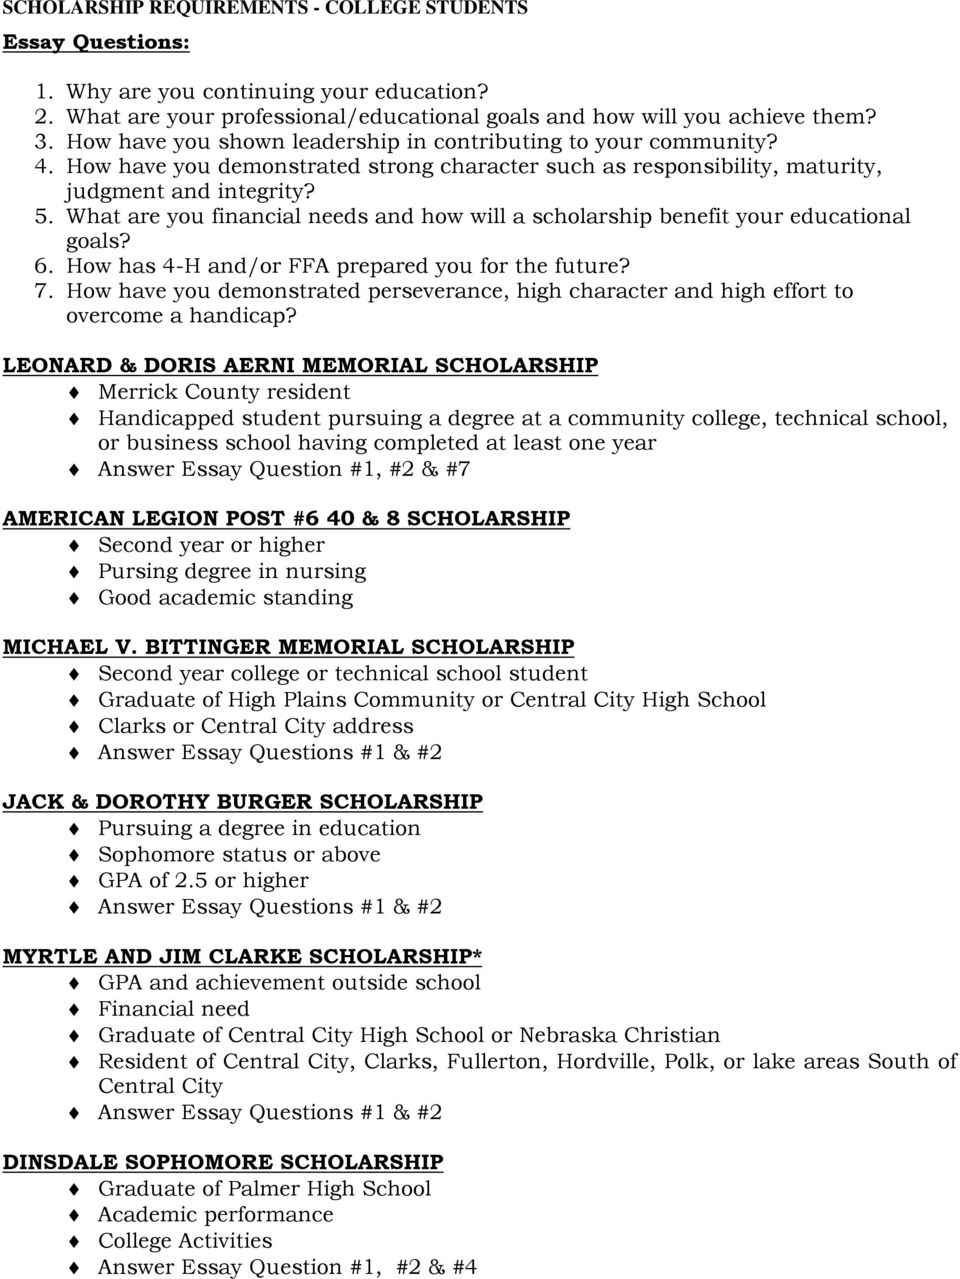 essay questions american legion post scholarship second what are you financial needs and how will a scholarship benefit your educational goals 6